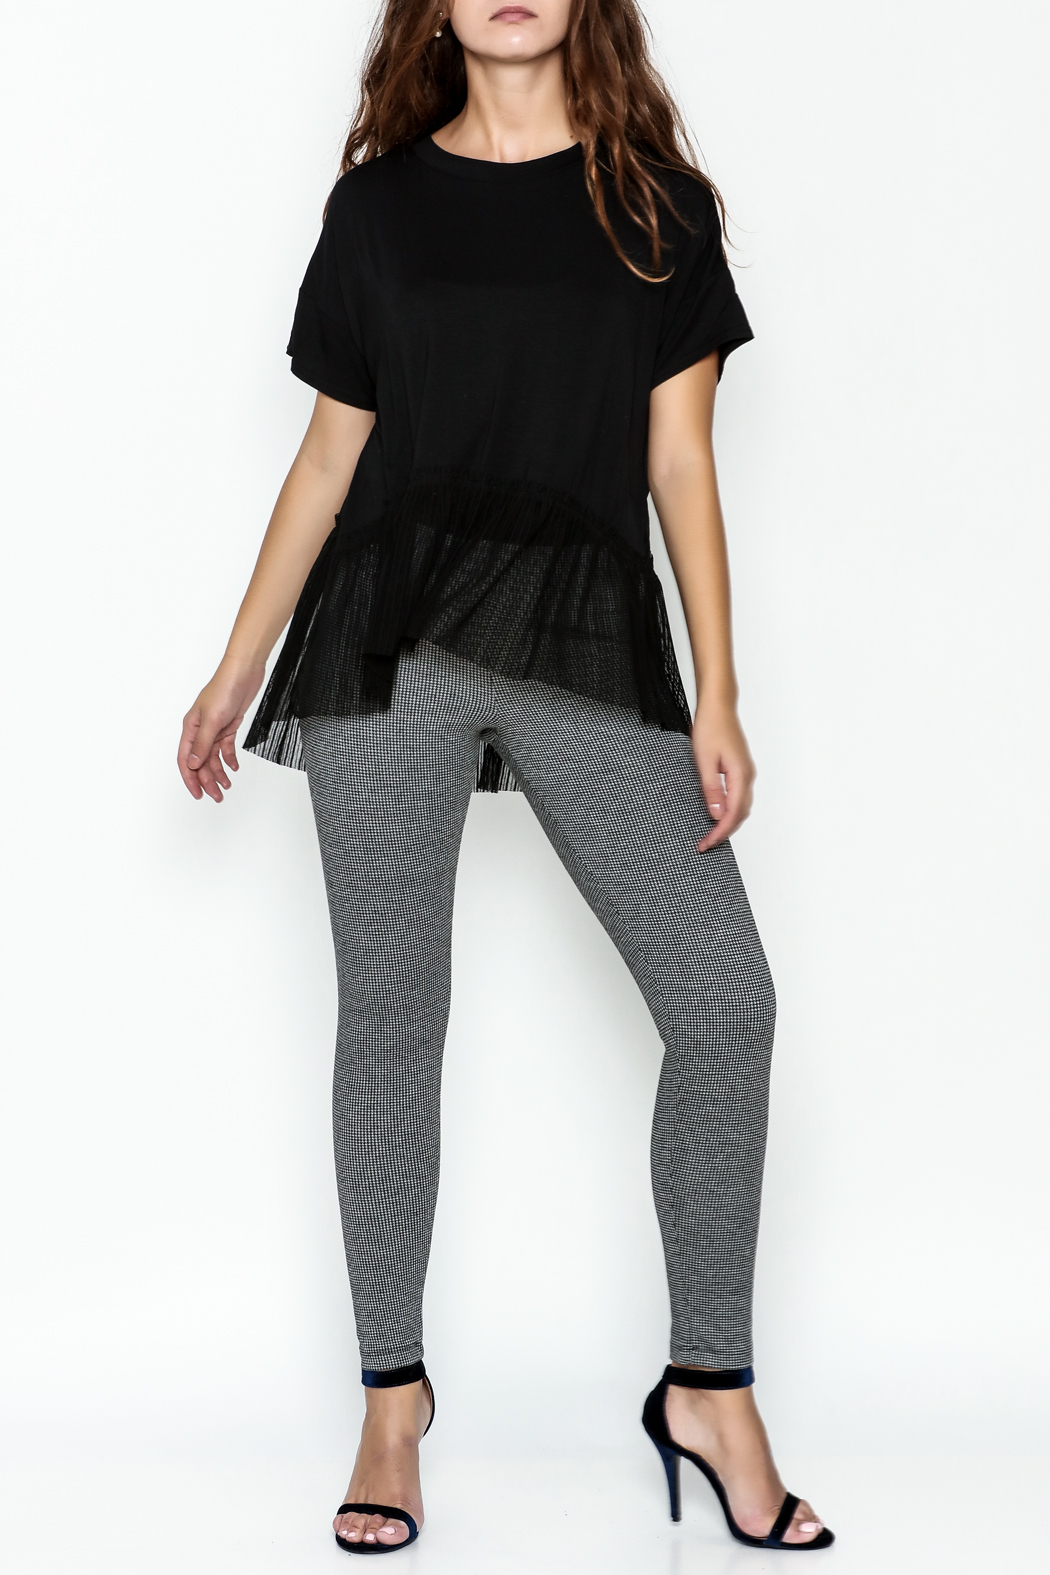 Sugar Lips Short Sleeve Knit Top - Side Cropped Image